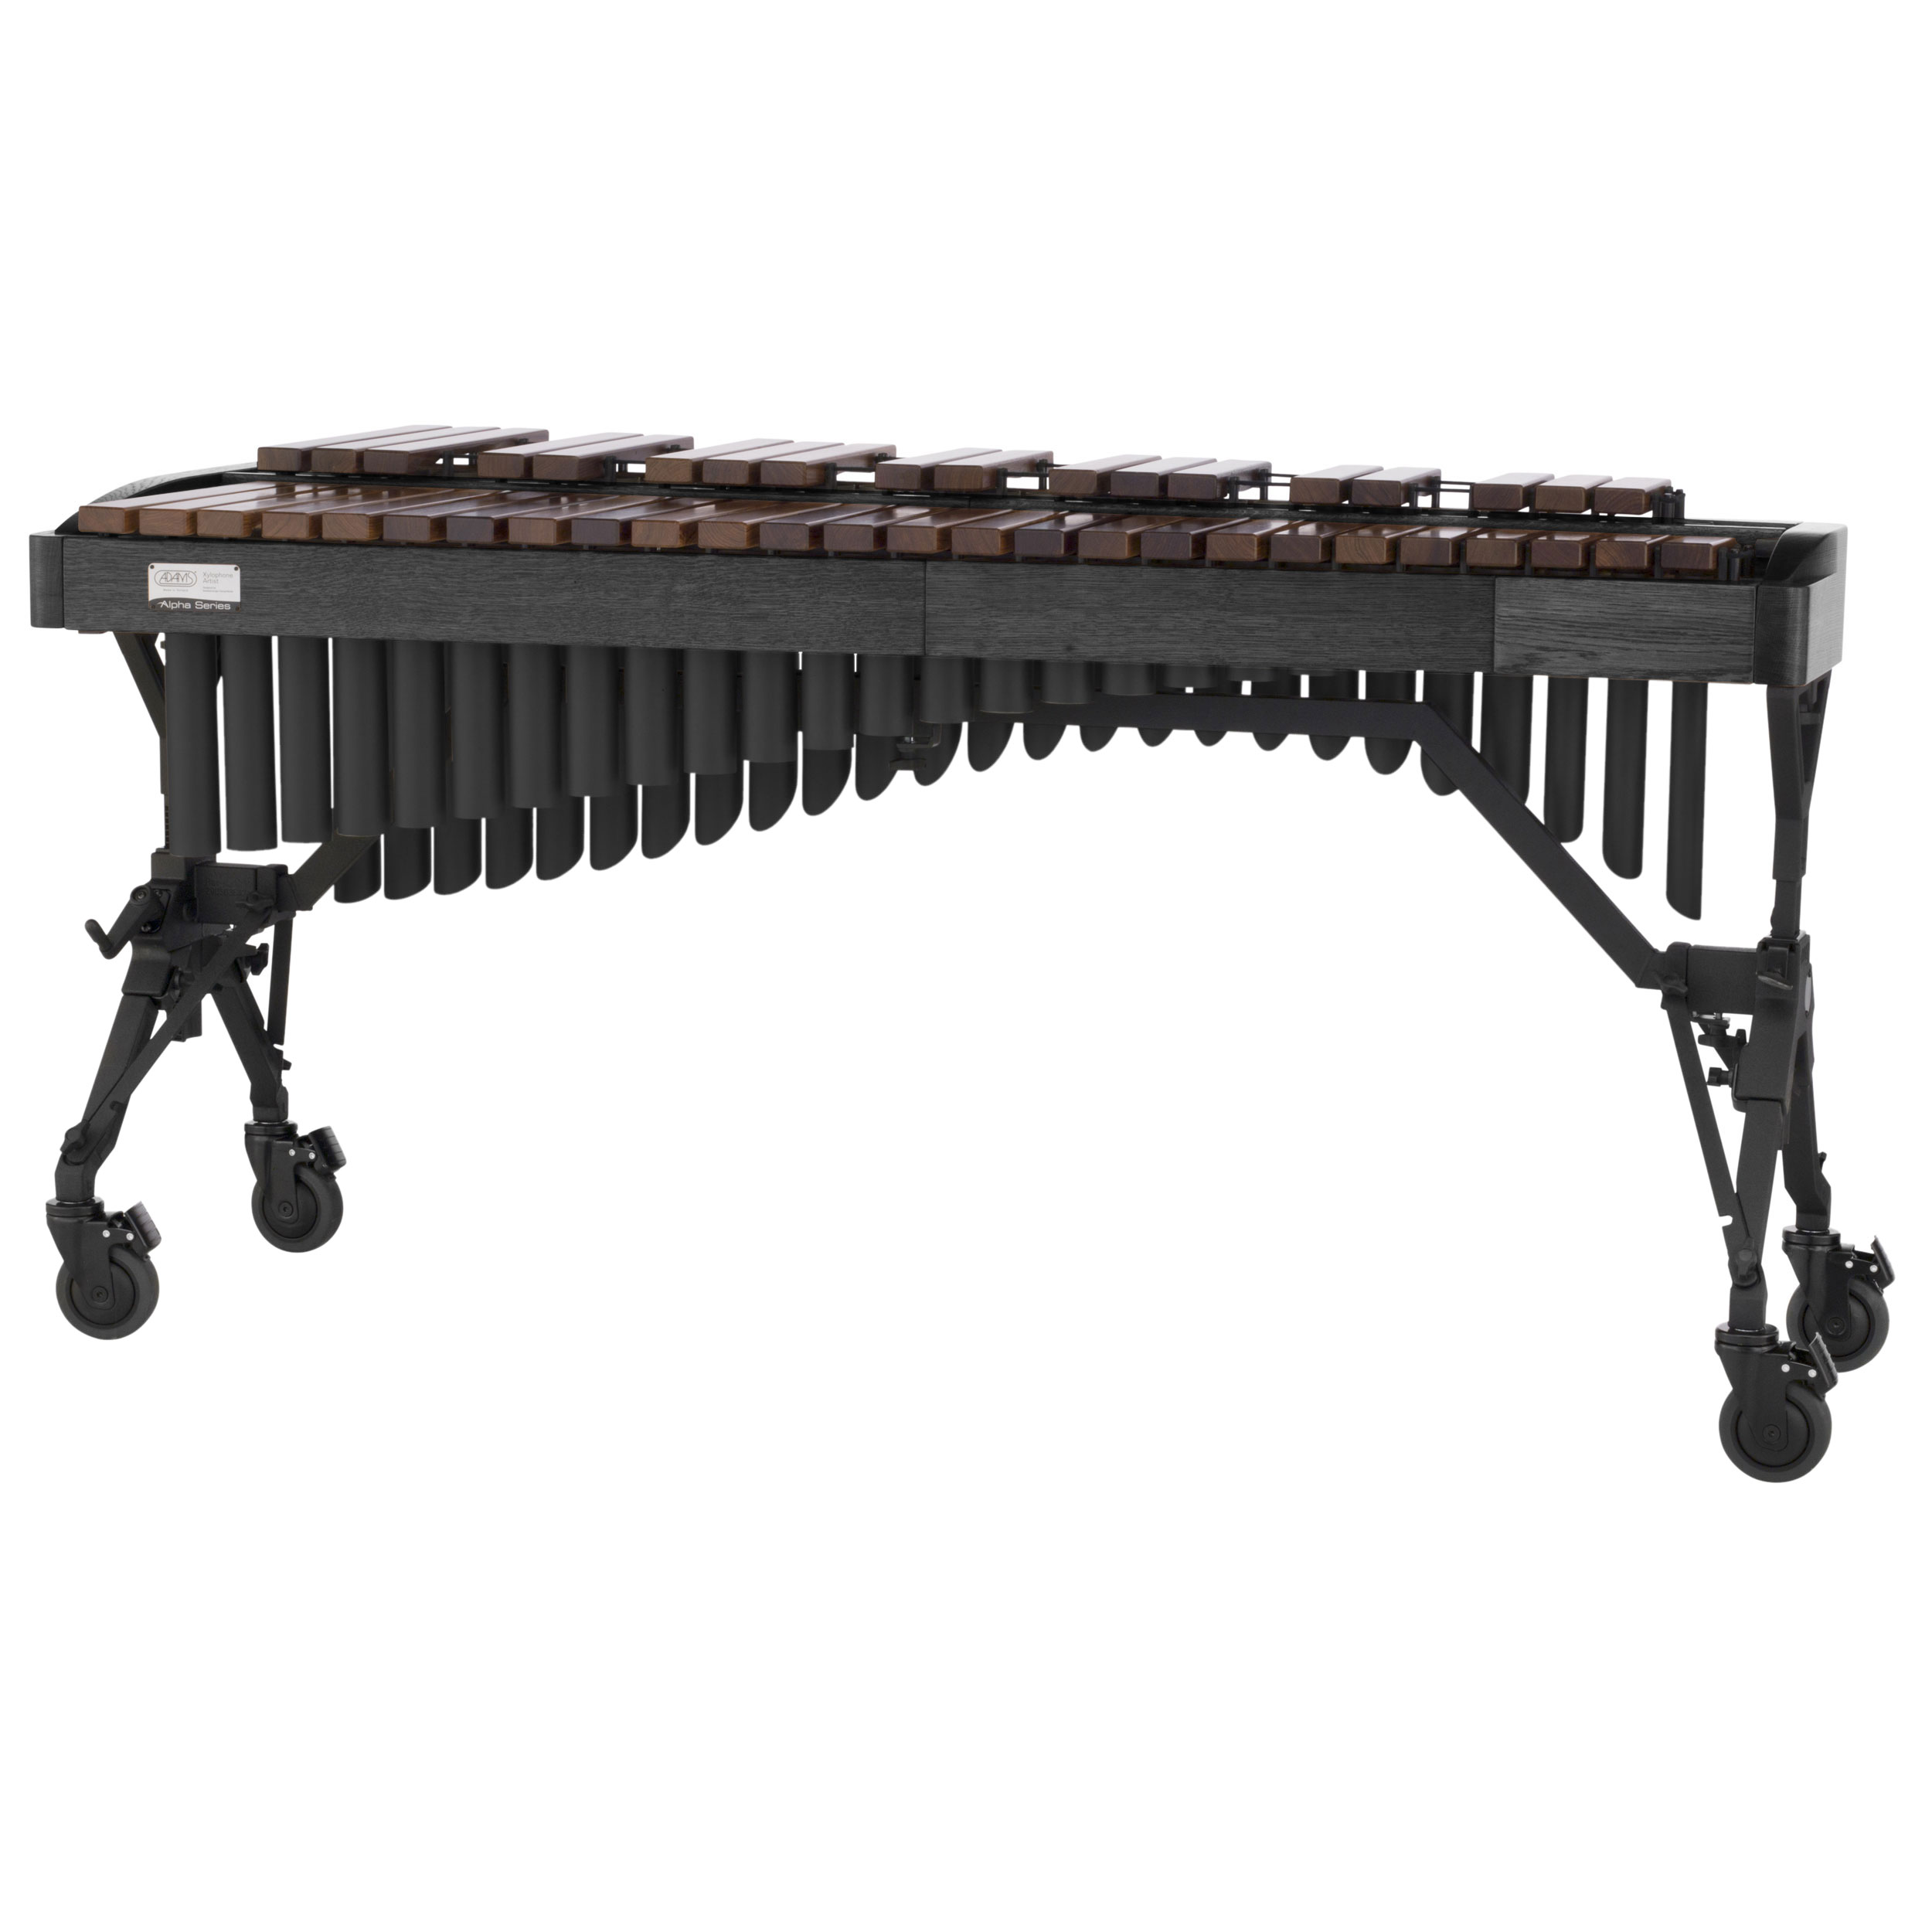 Adams 3.5 Octave Alpha Rosewood Xylophone with Graphite Oak Rails & Black Resonators